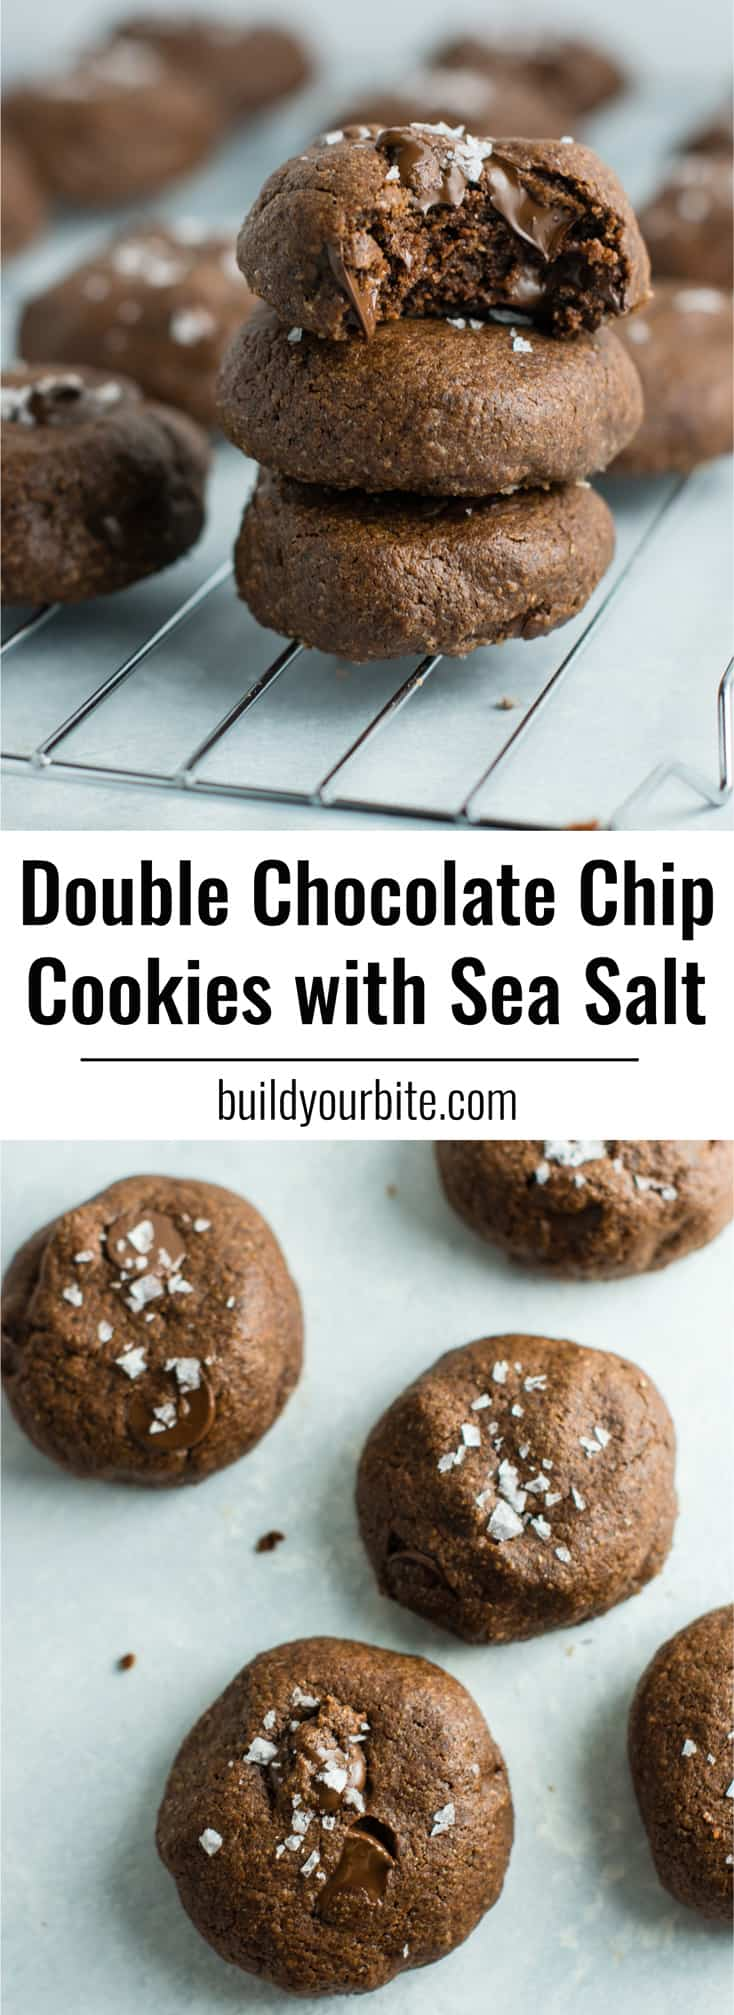 Healthy double chocolate chip cookies with sea salt. So decadent and delicious and made healthier with coconut oil! #doublechocolatechipcookies #healthycookies #dairyfree #dessert #healthy